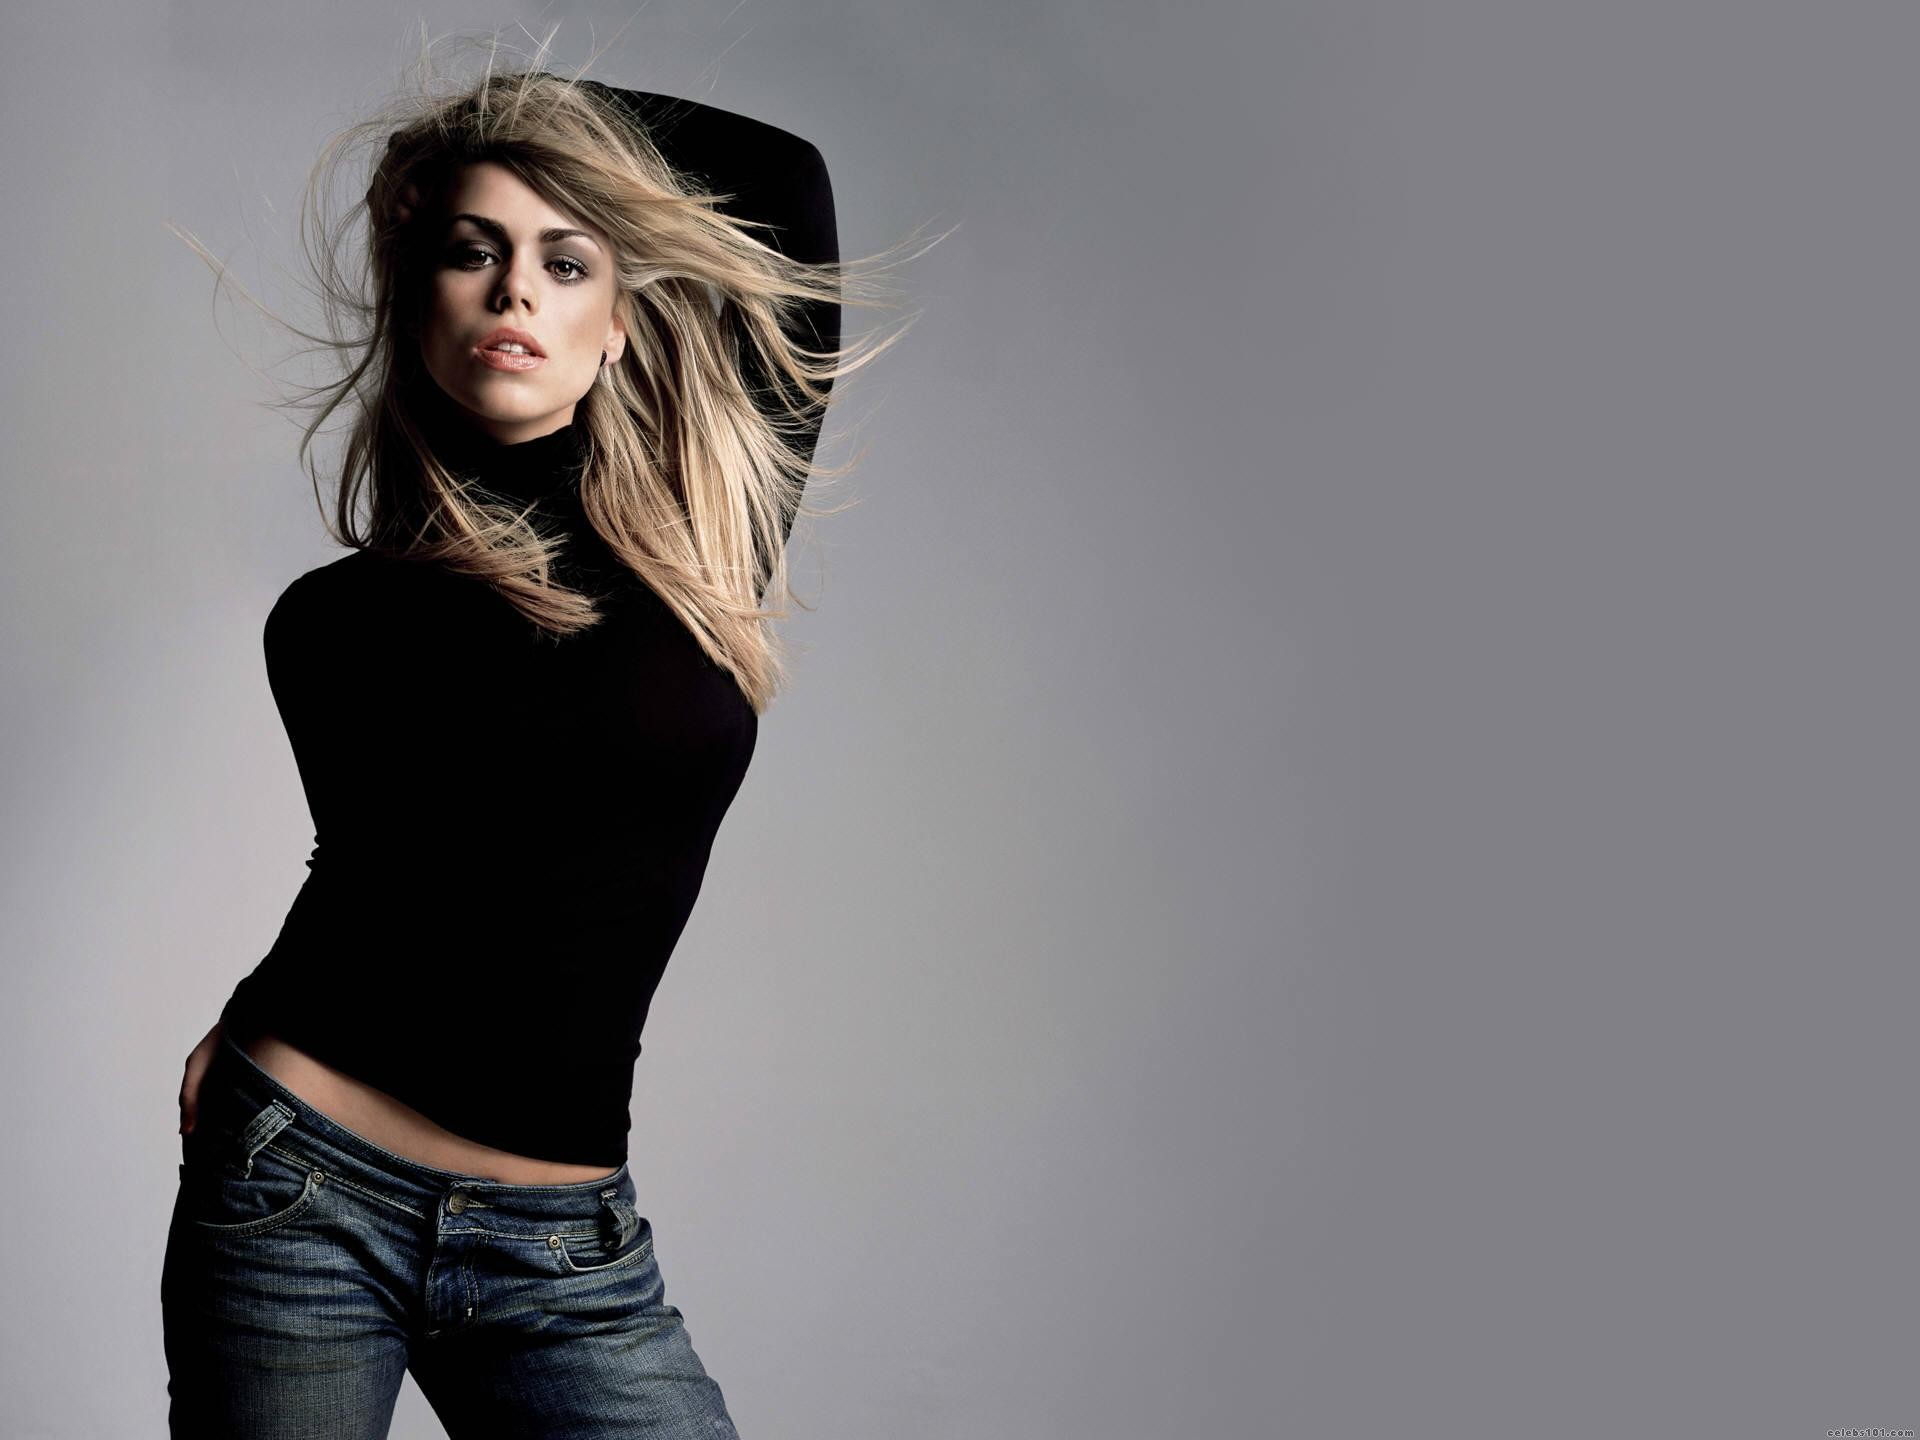 Billie Piper actress musician singer blondes women females girls sexy babes face eyes cleavage cities buildings rivers